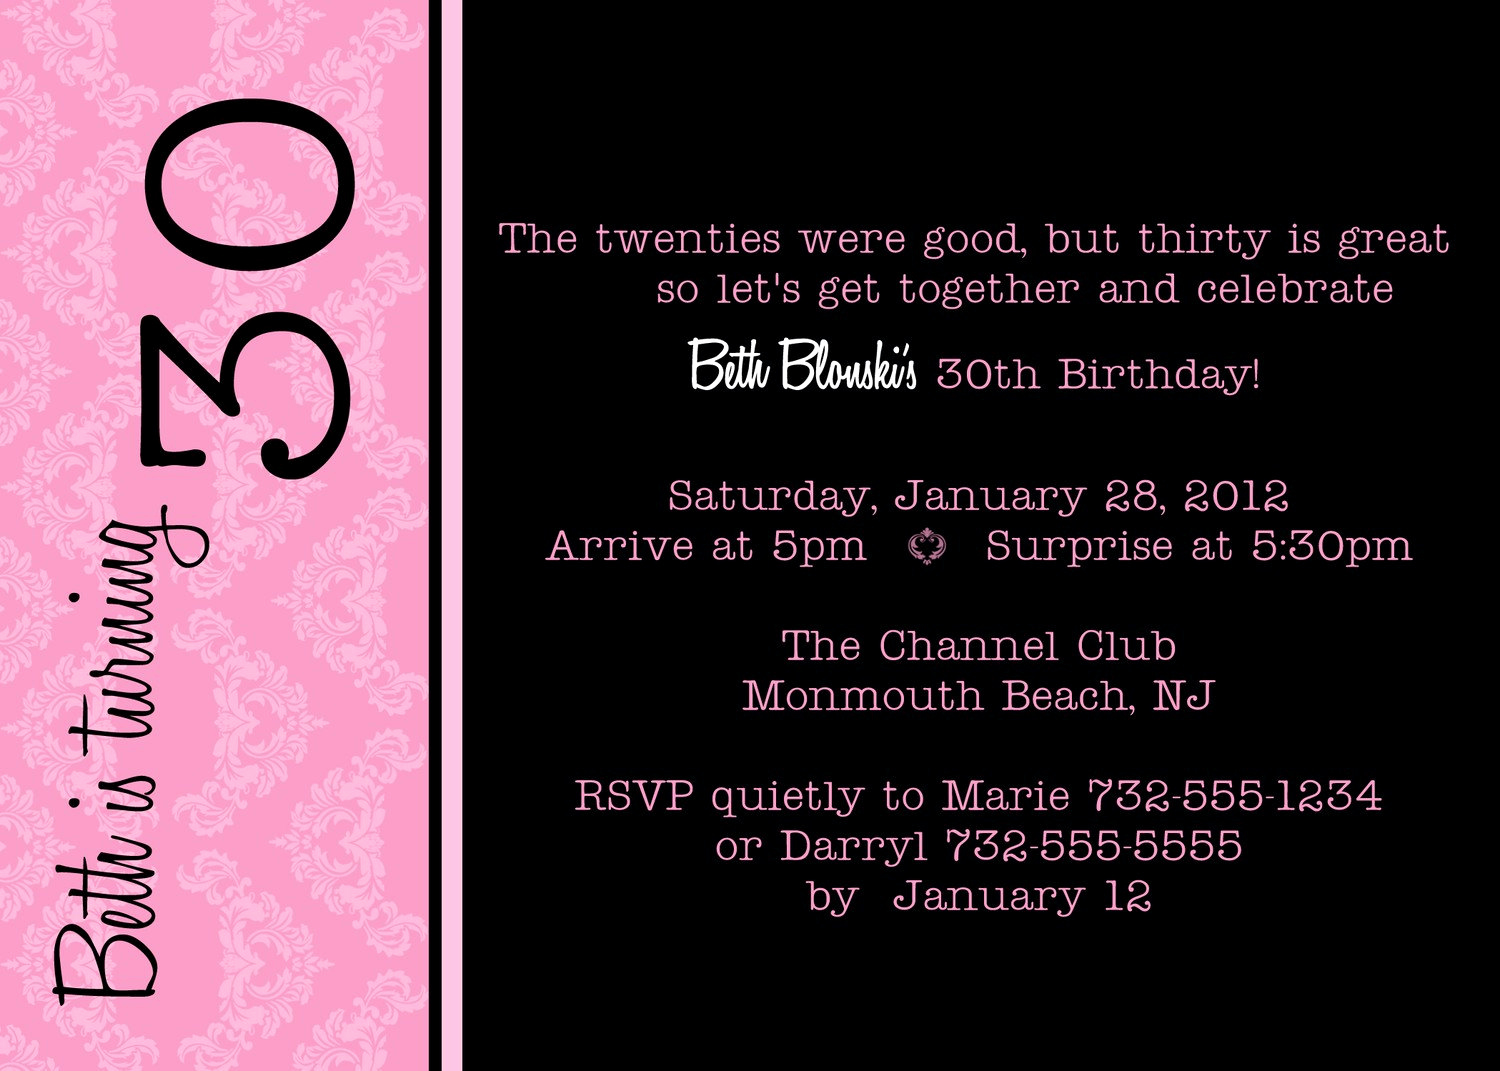 30th Birthday Invitation Templates Beautiful Funny 30th Birthday Quotes for Men Quotesgram